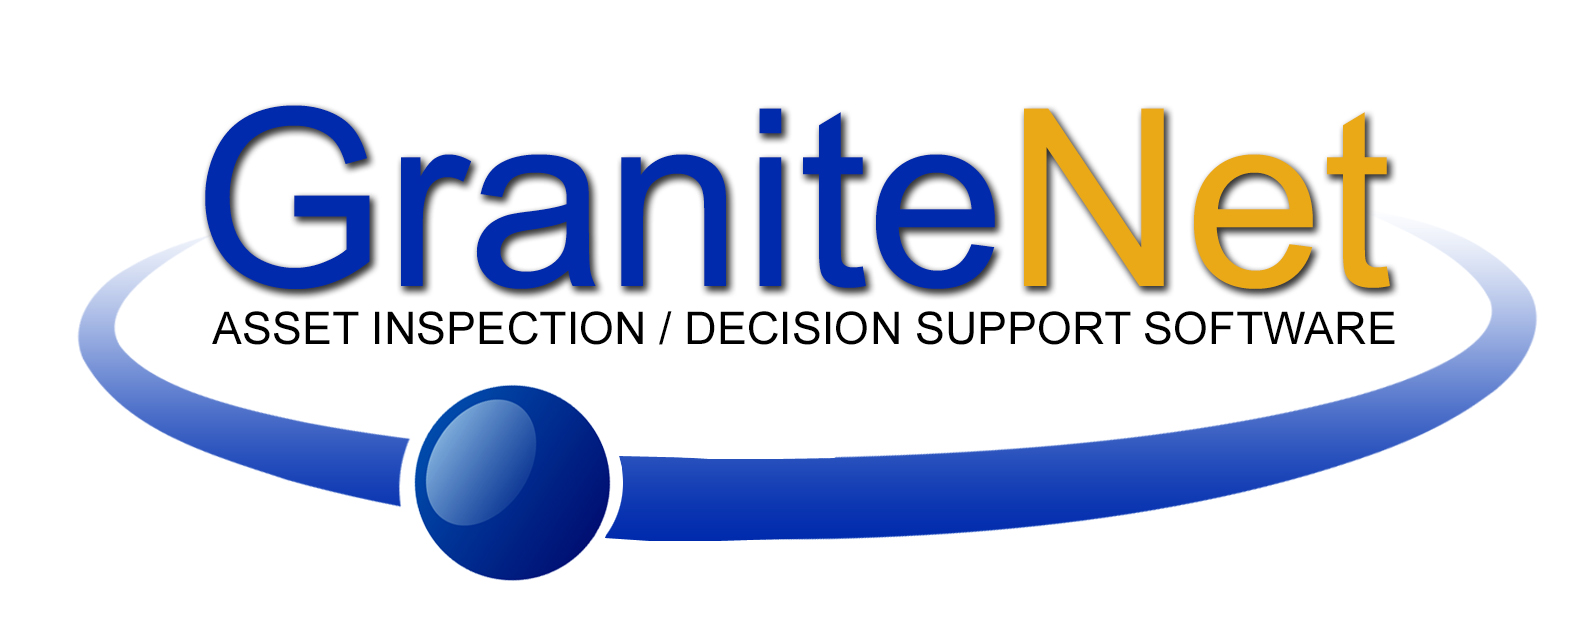 GraniteNet Asset Inspection / Decision S...